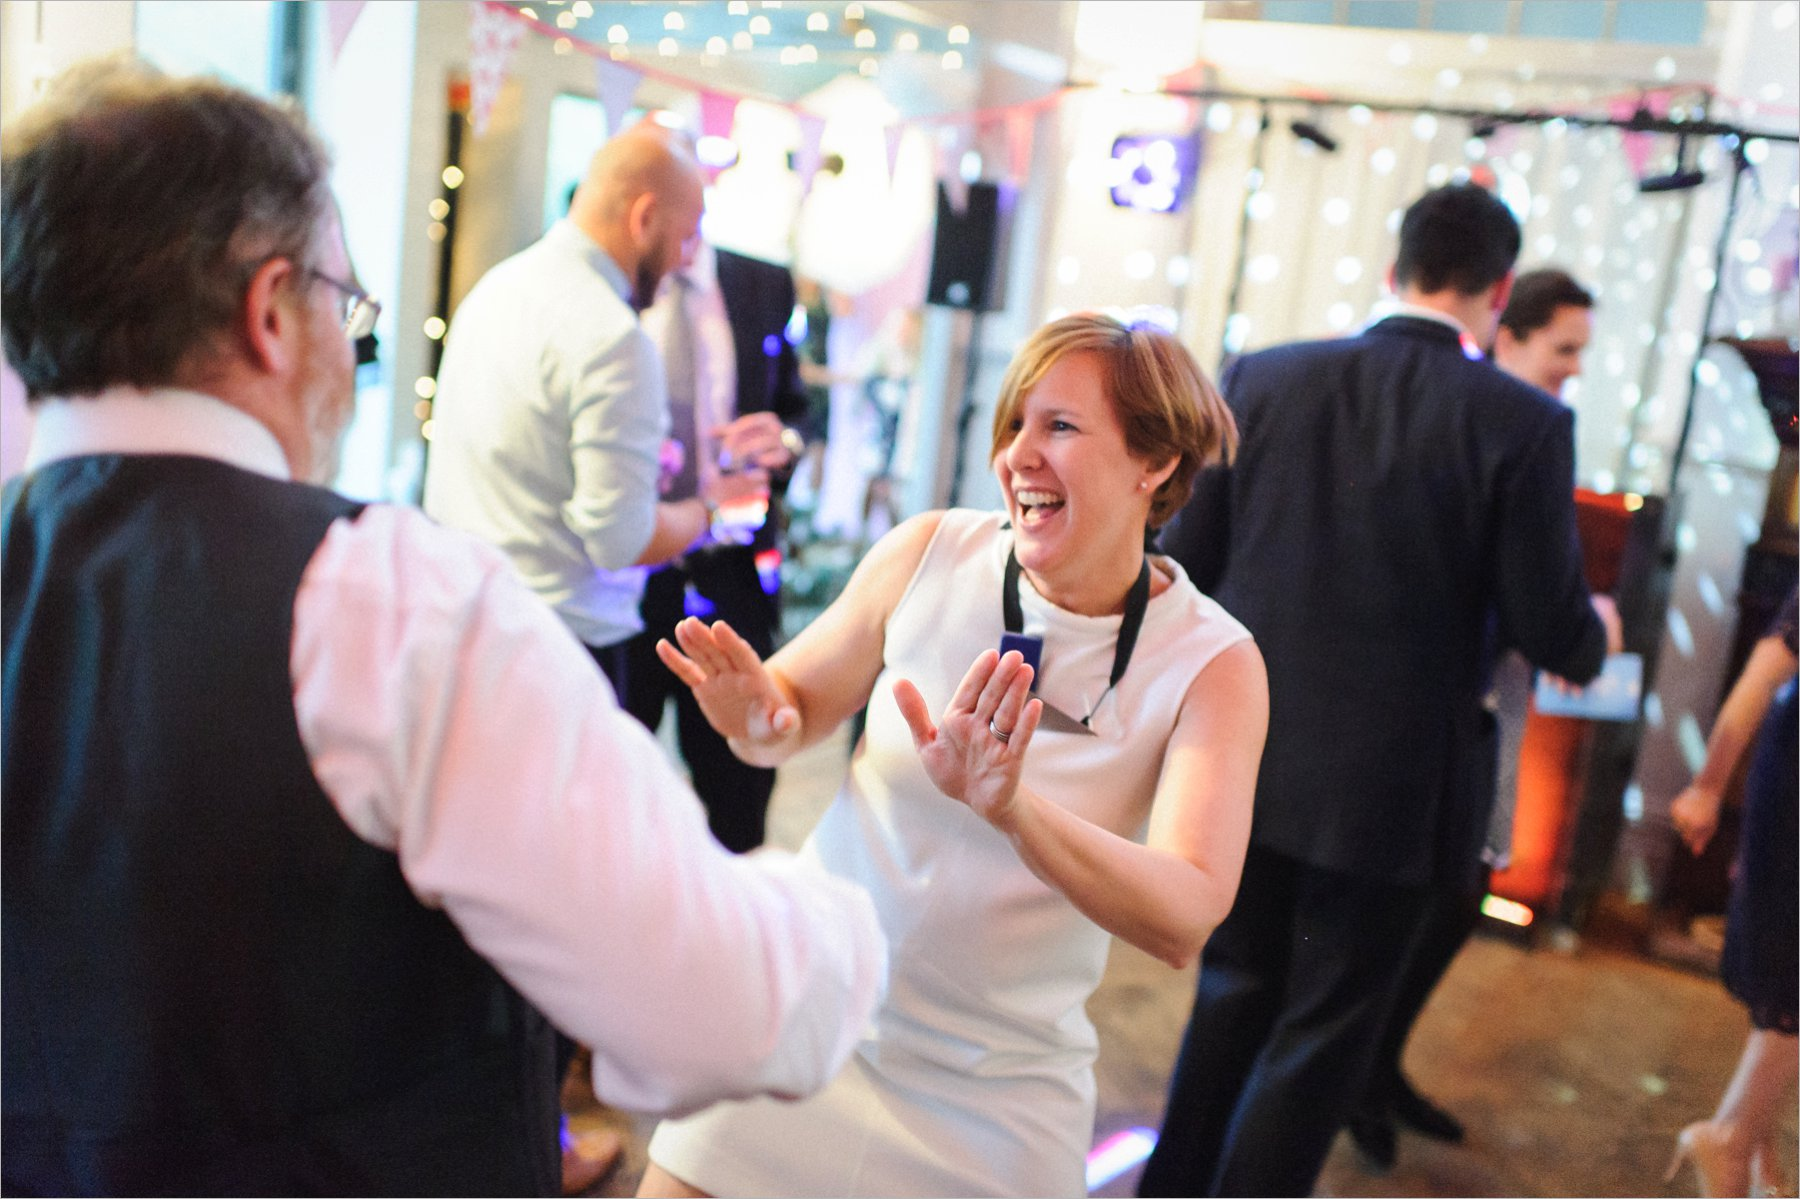 throwing some shapes at the wedding disco